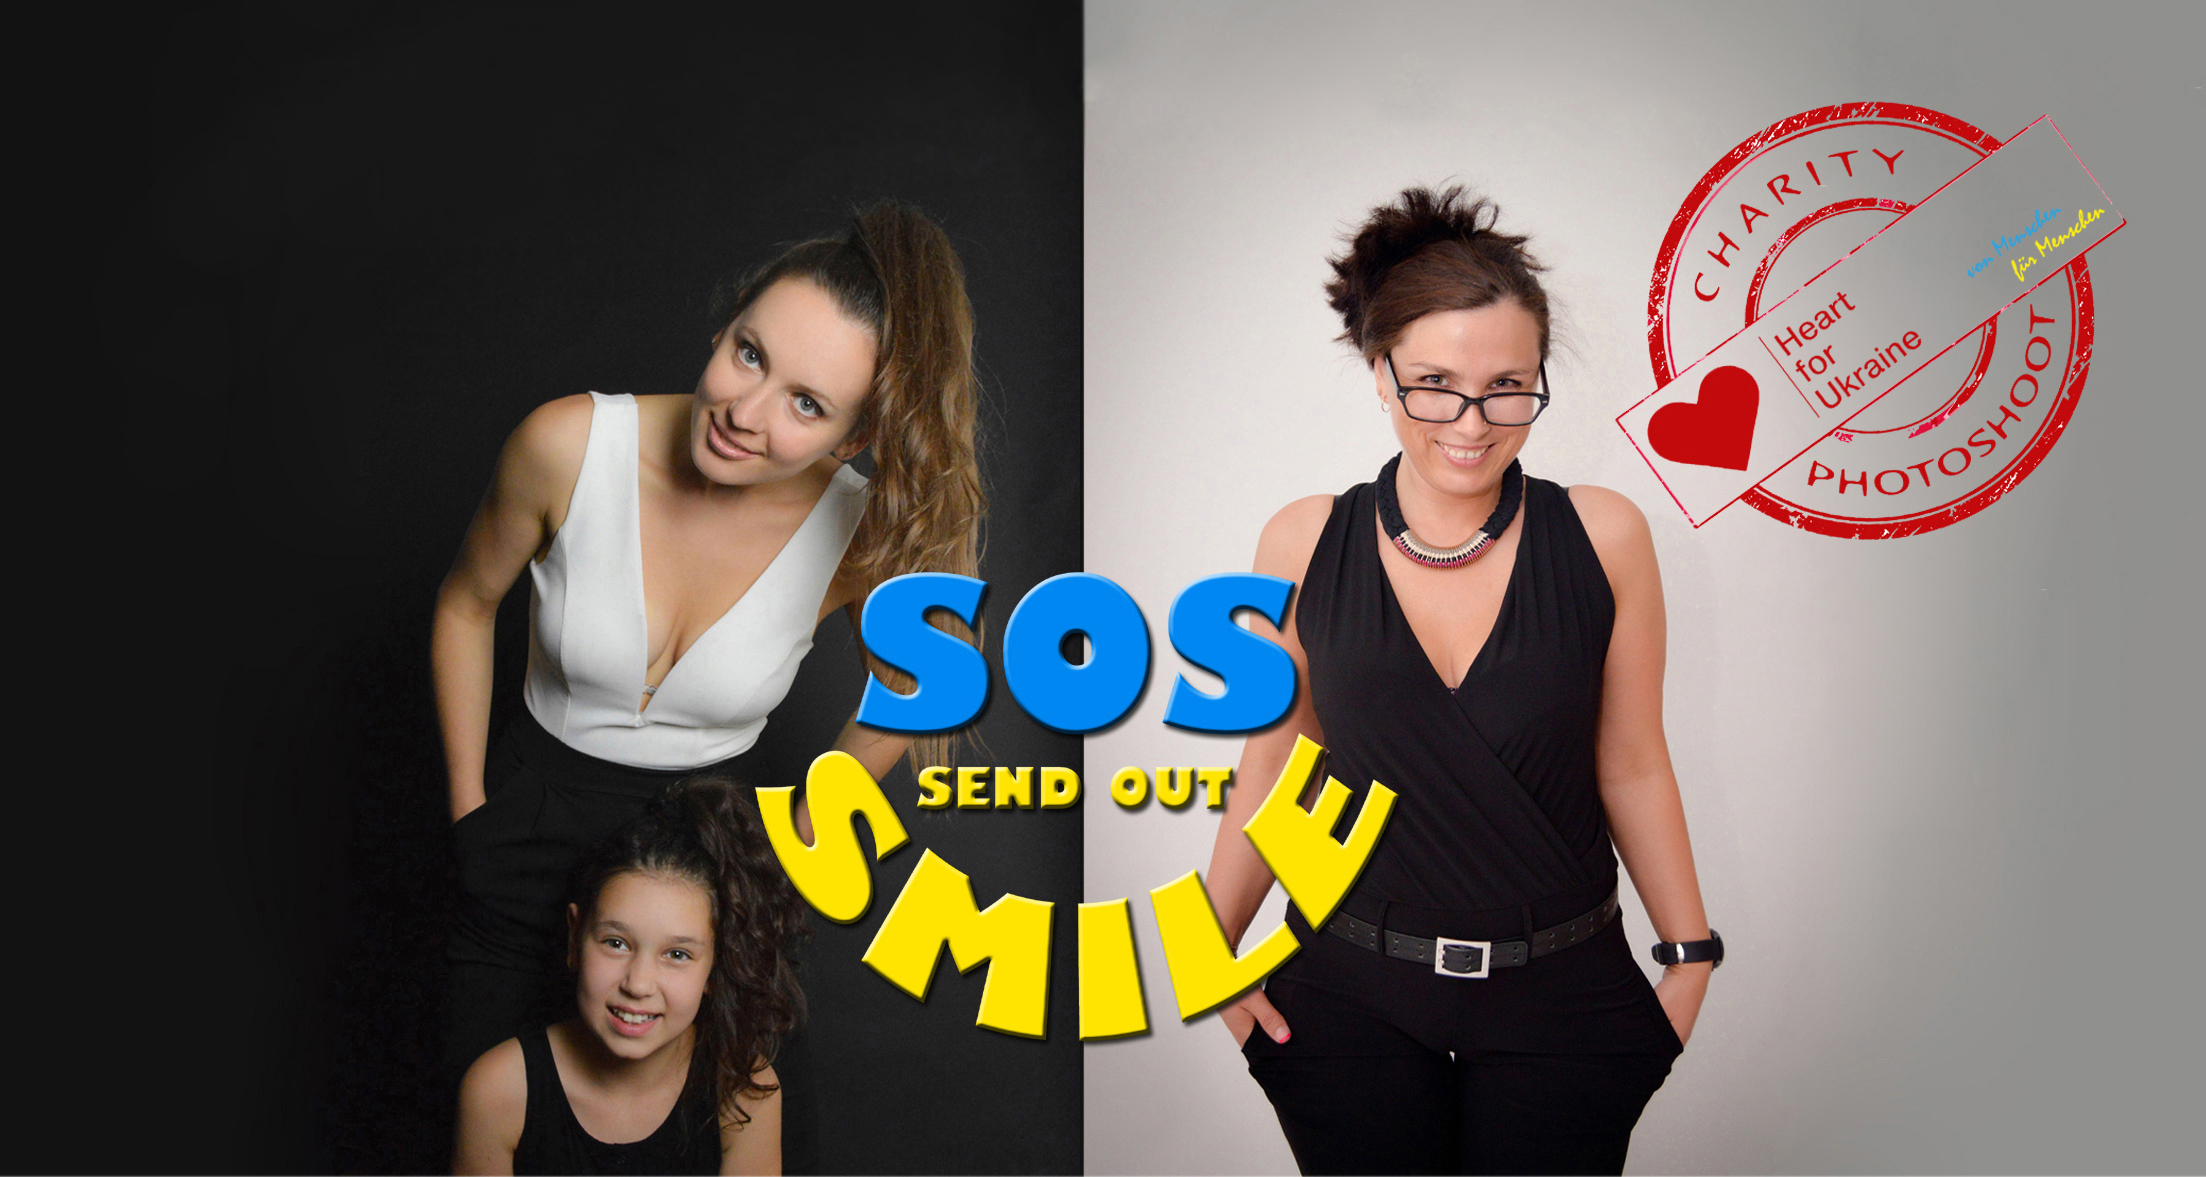 S O S – SEND OUT SMILES // Charity Photoshooting